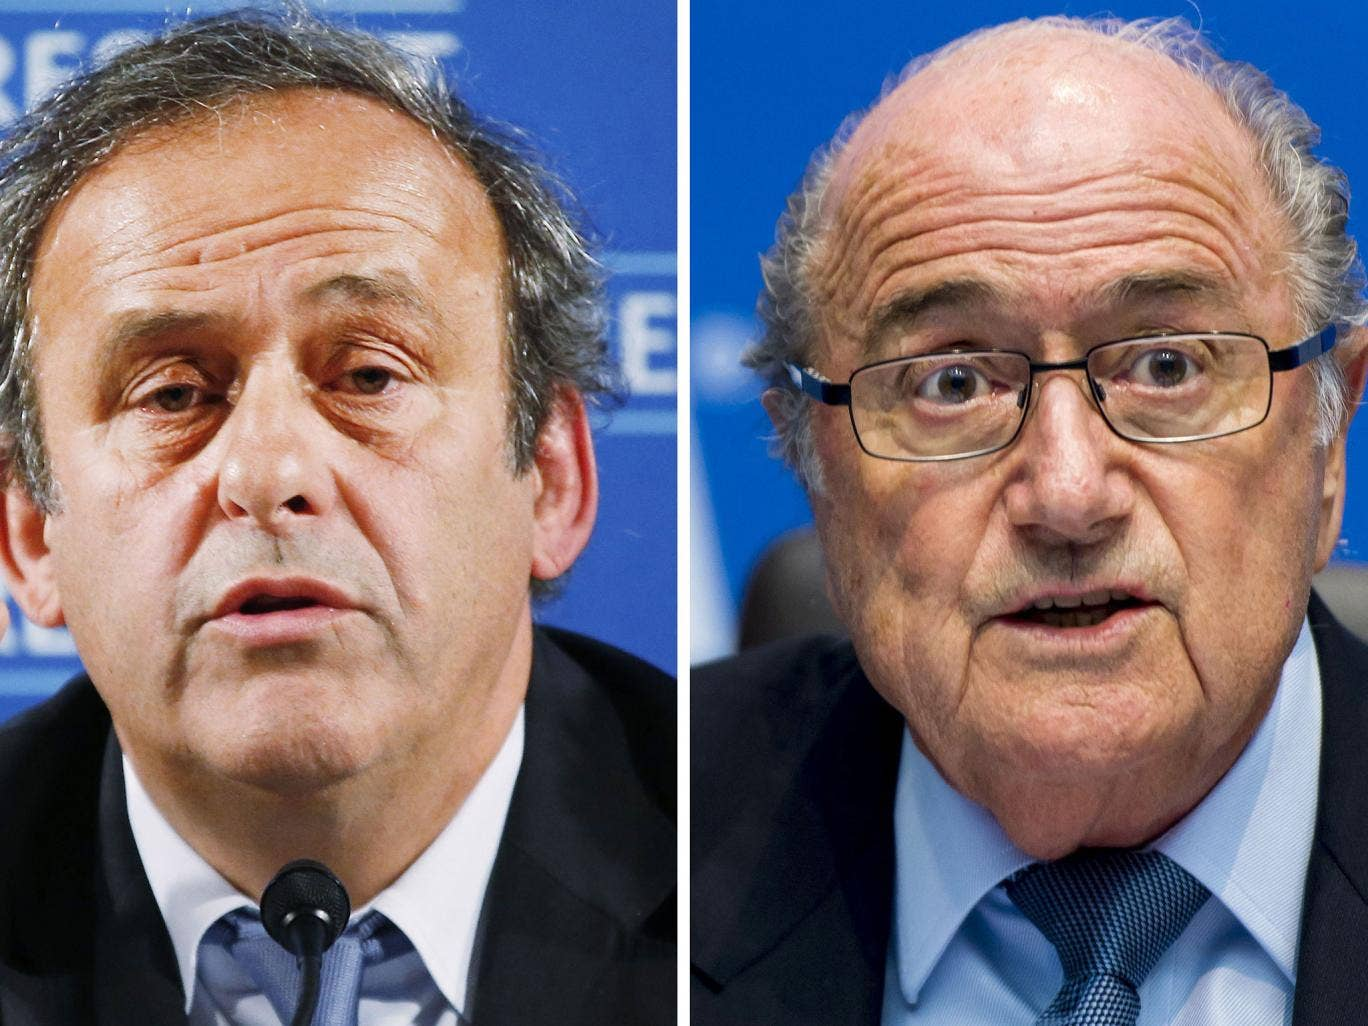 The President of Uefa Michael Platini (left) is marshalling European federations against his former ally Sepp Blatter